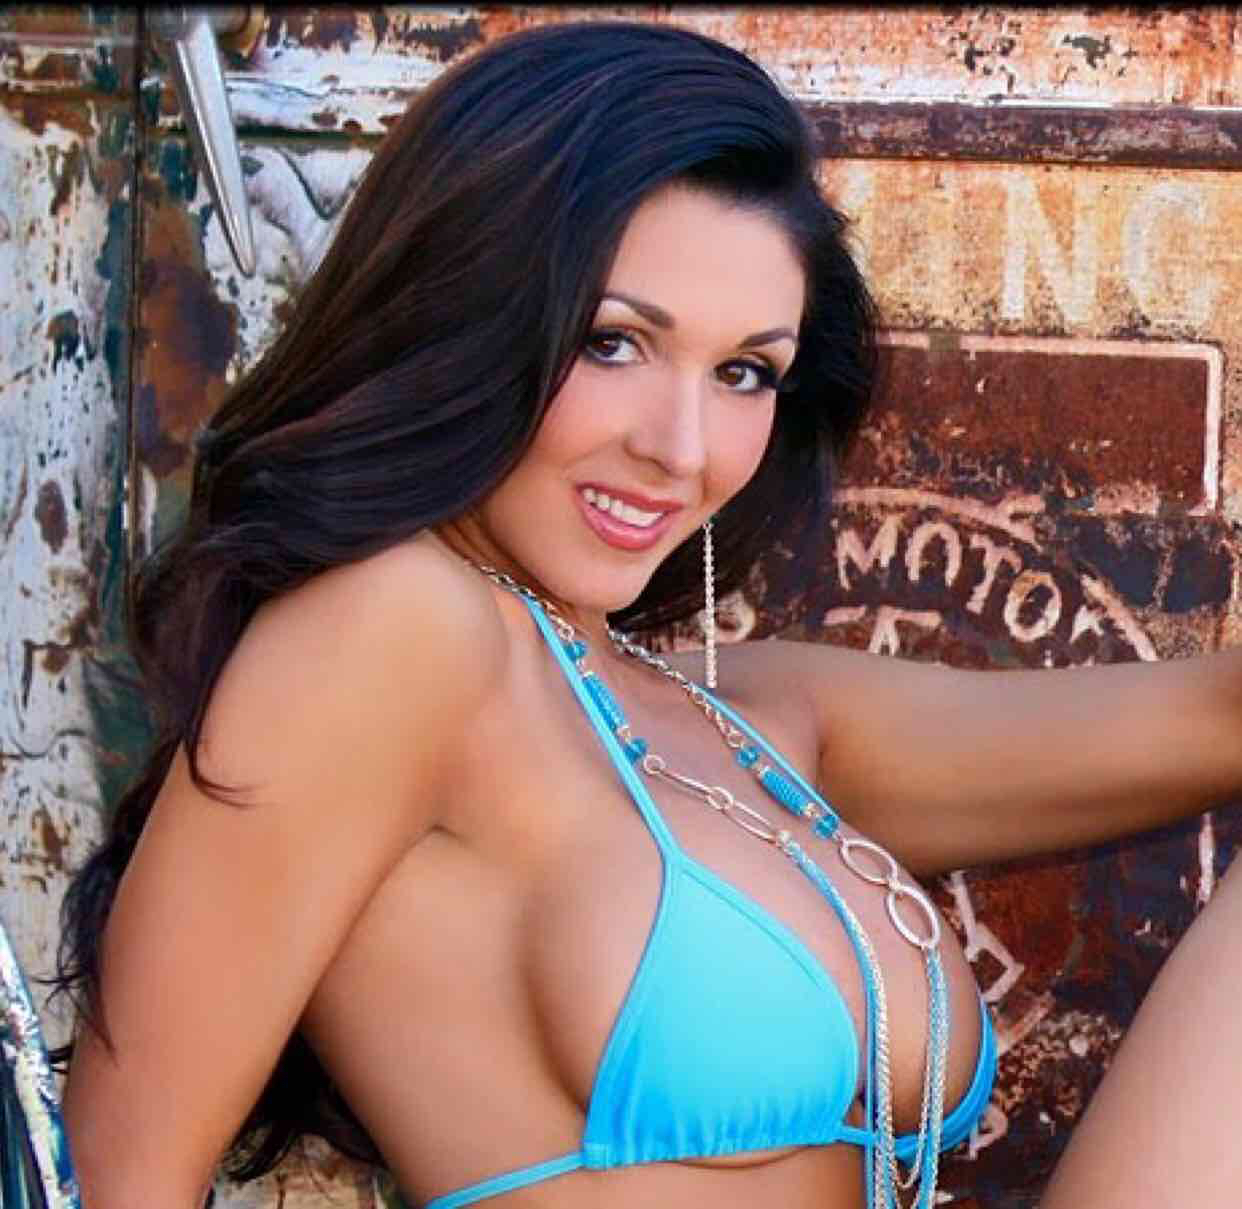 Avatar of Taya Parker